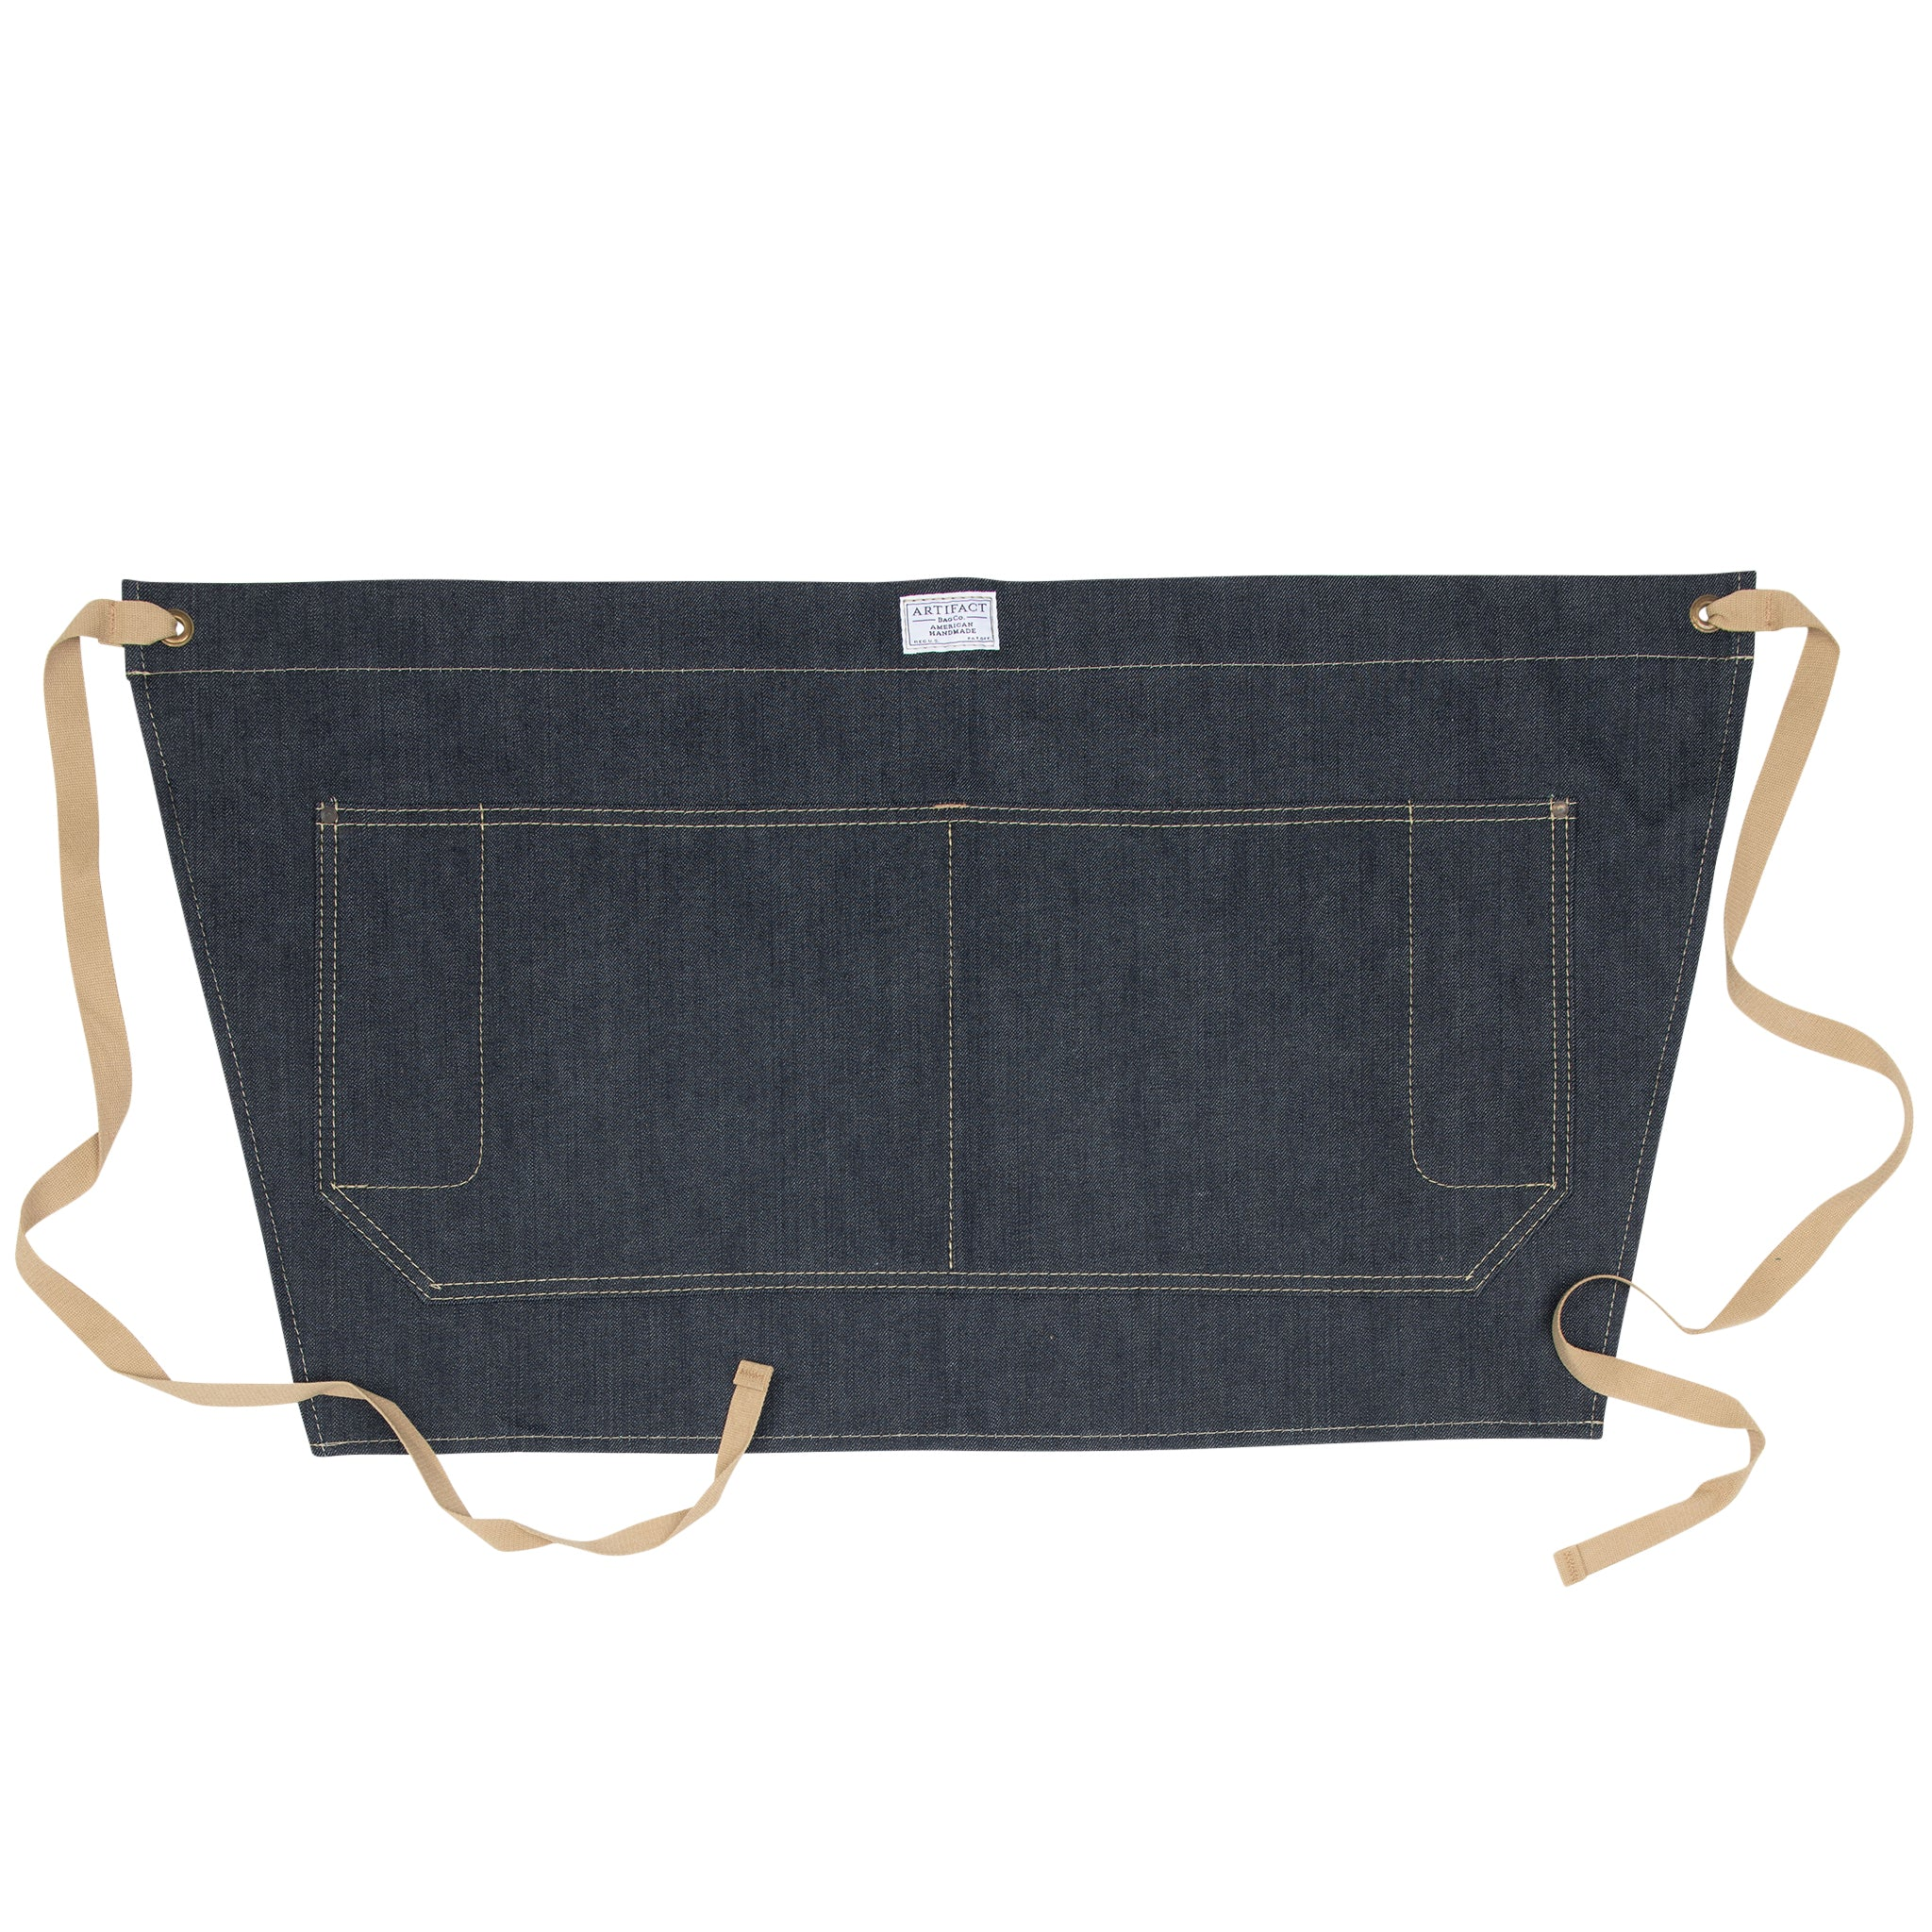 Artifact Kurabo Denim Kurabo Denim Waist Apron